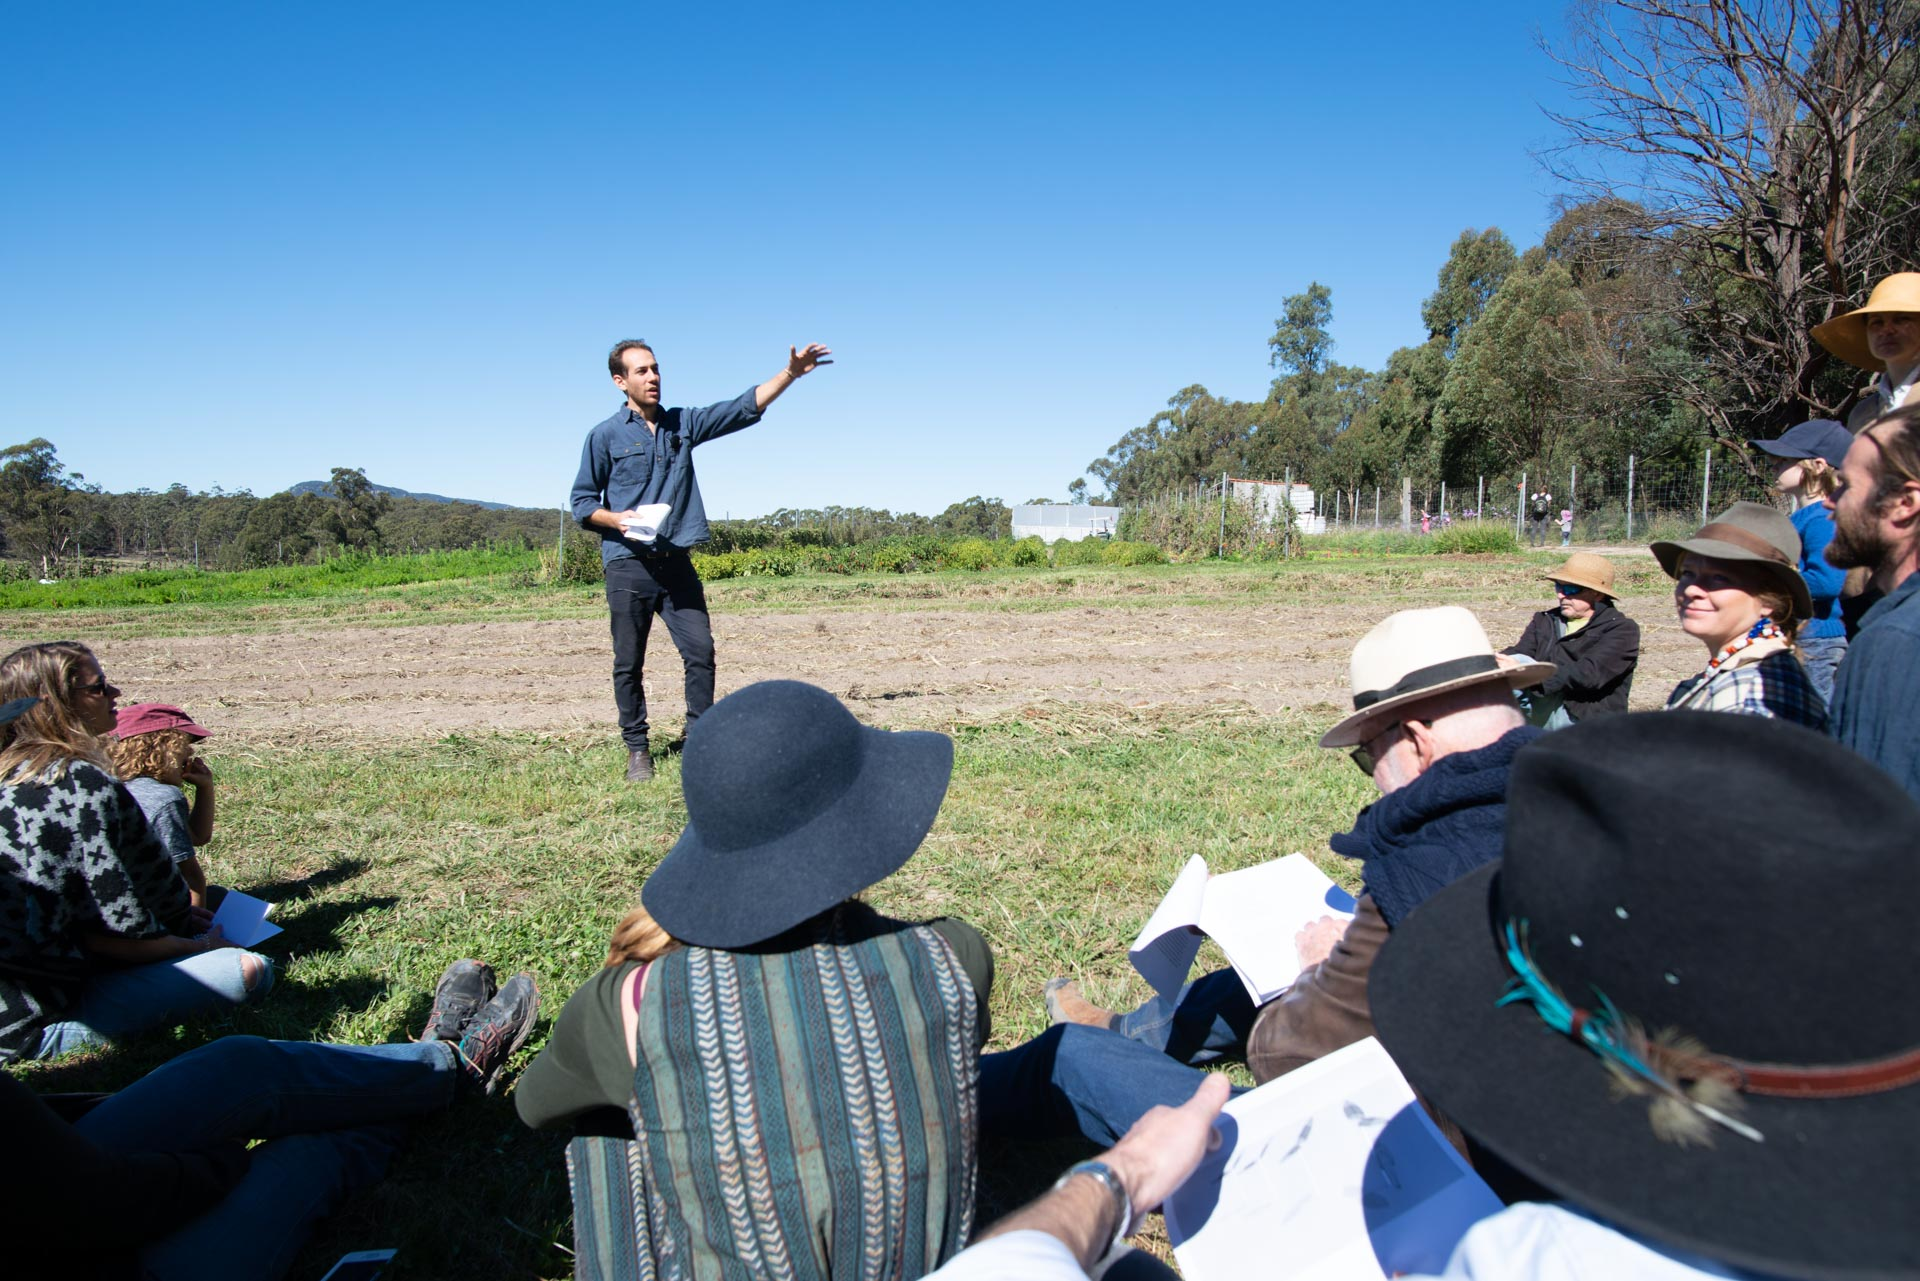 Artist Mark Swartz is seen here speaking in front of the patch of the market garden which has been allocated to 'the solar garden' project. He, Erika and Hayden and solar scientist Bjorn Sturmberg, are nutting out how solar-panelled sculptures or 'trees' could be installed here. They could function as a 'storey', harvesting sunlight to power things like irrigation pumps, while also providing modest shade to other plants.